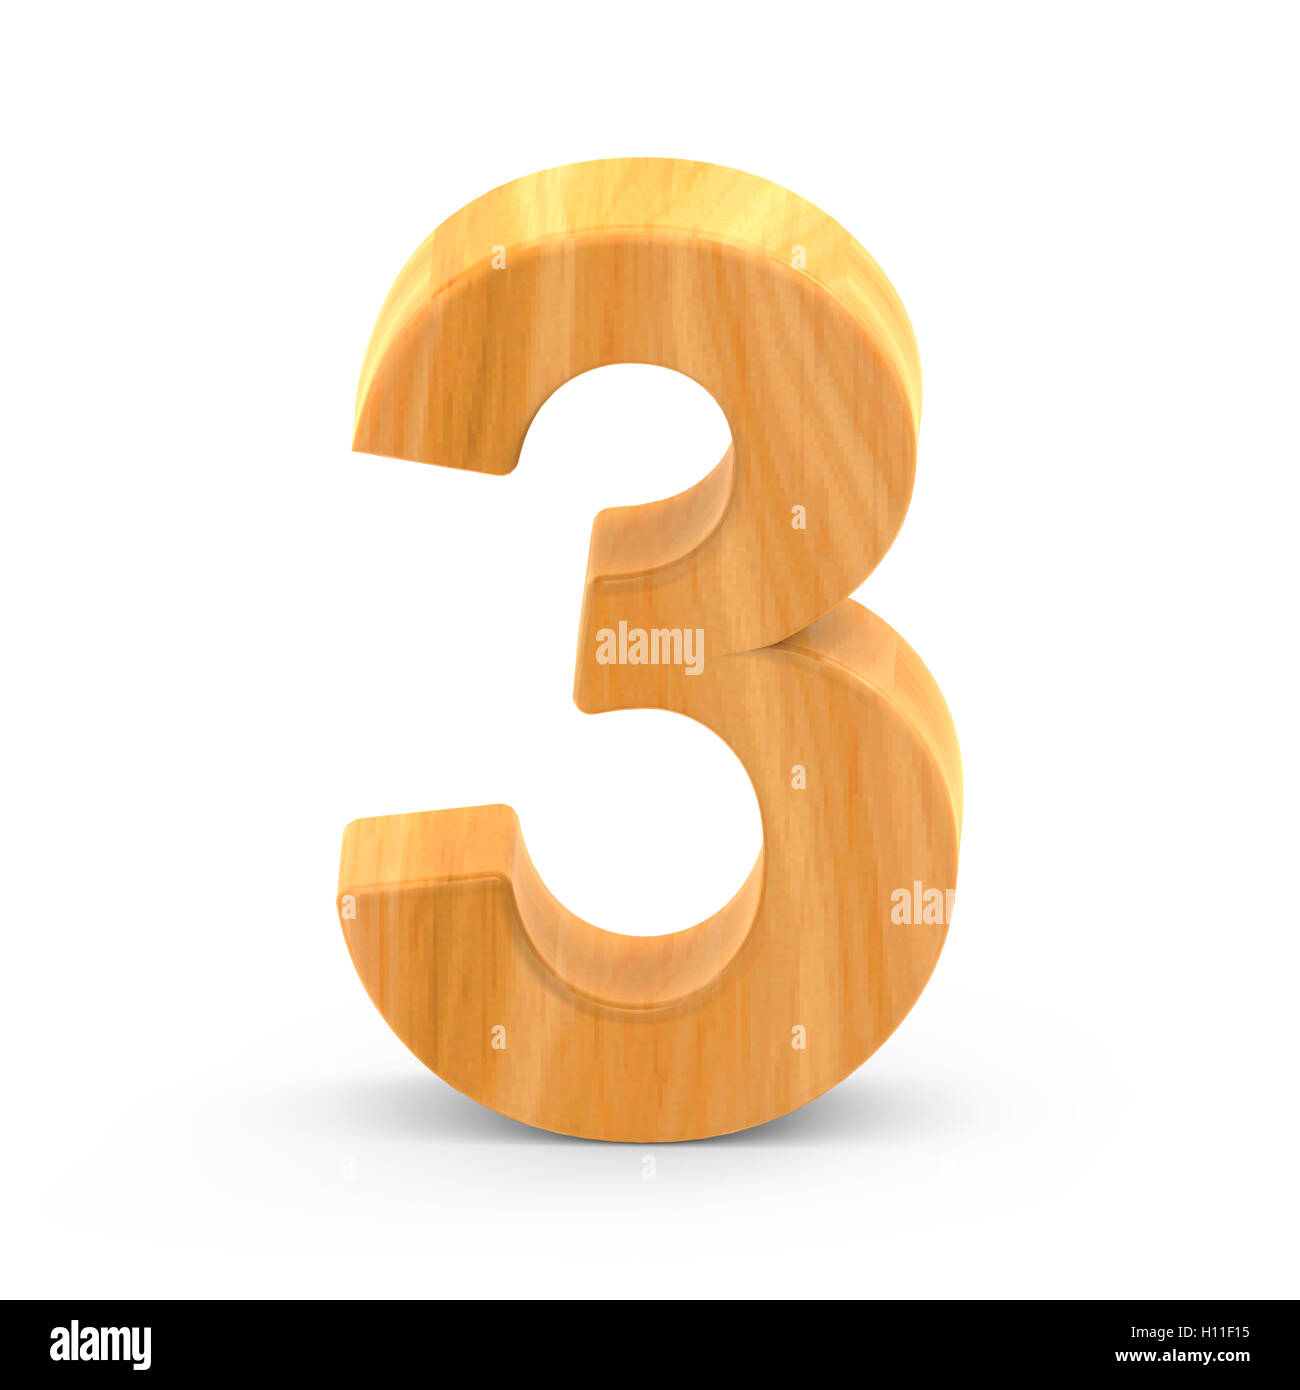 3D rendering white number 3 isolated on white background, light brown wooden grain, natural surface grain - Stock Image